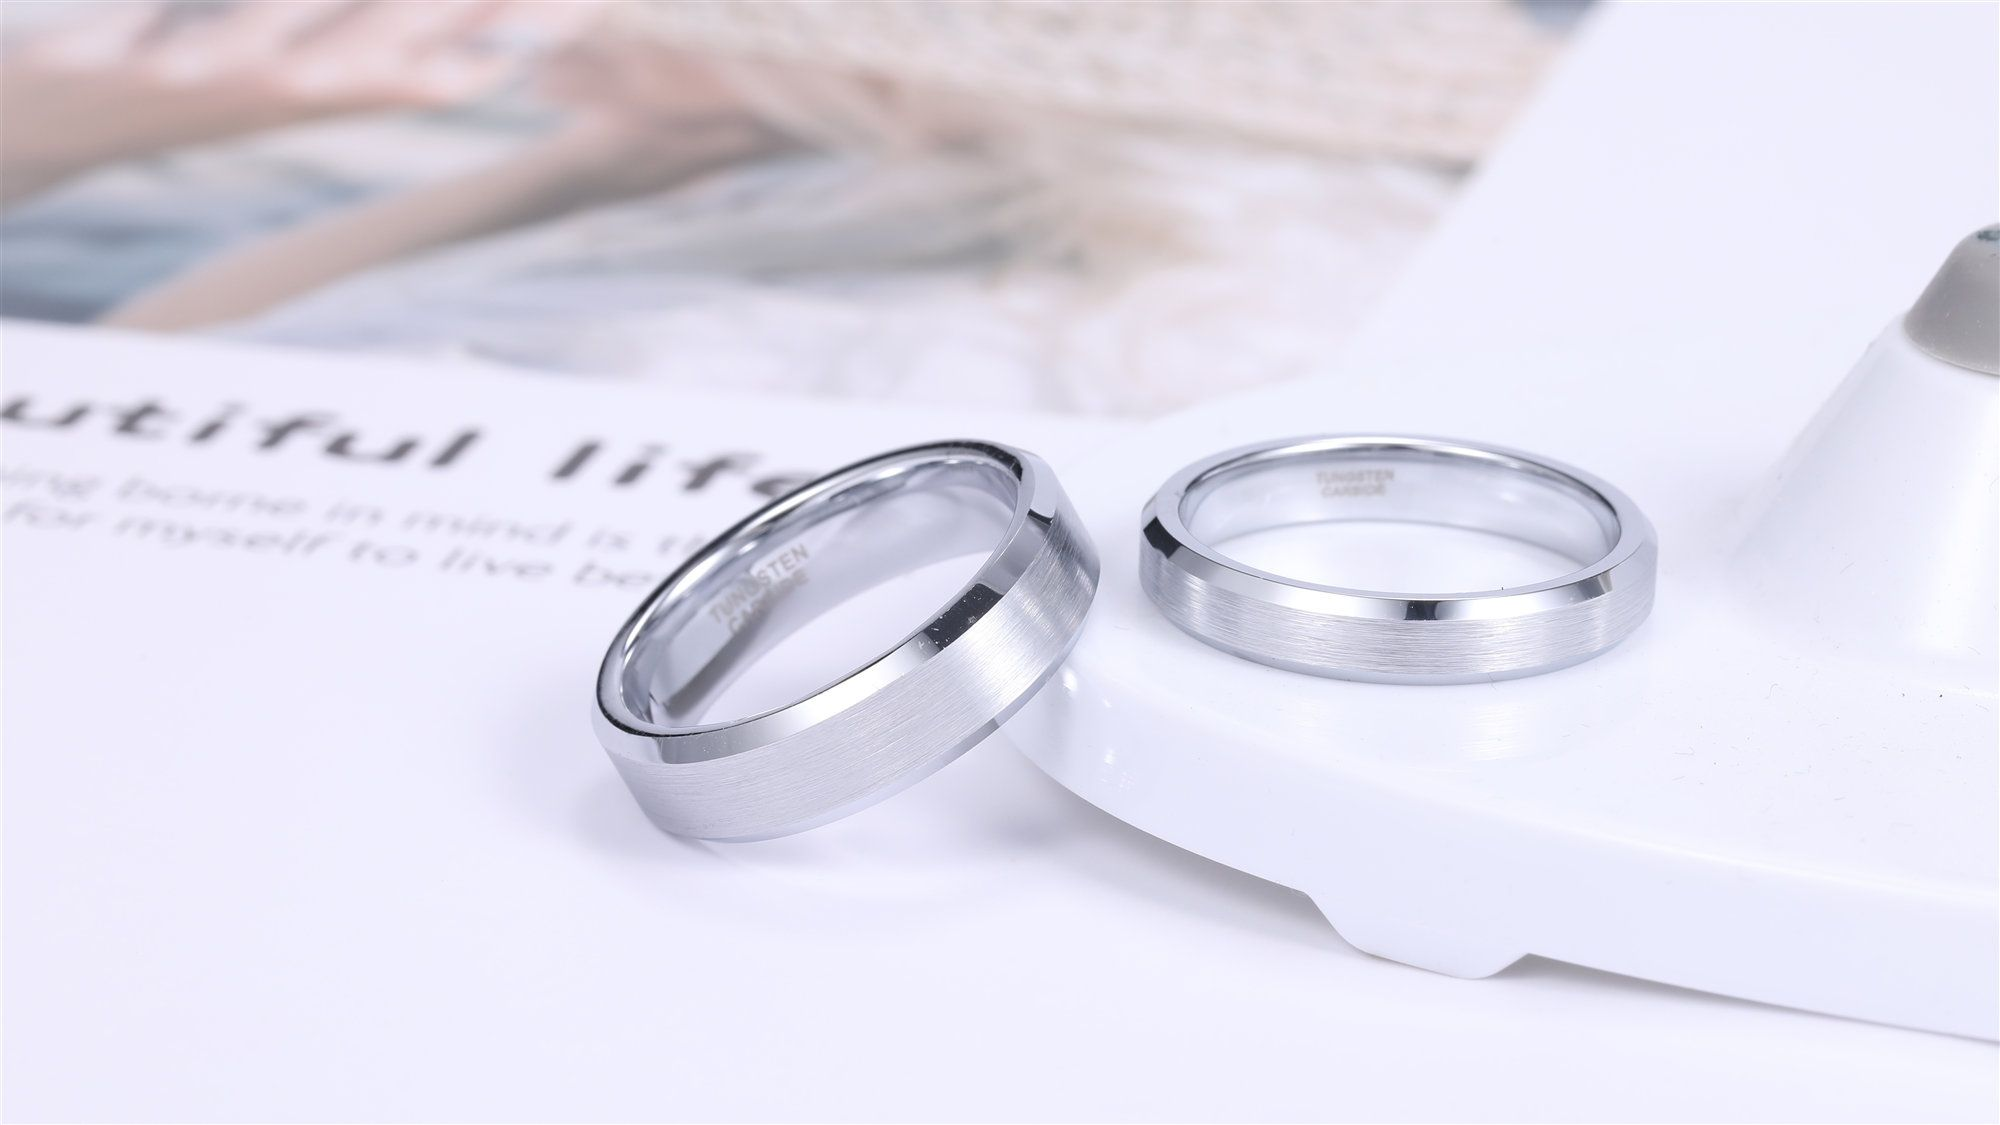 Silver Tungsten Wedding Bands For Men Women Brushed Center And Beveled Edge In 2020 Silver Wedding Bands Tungsten Wedding Bands Mens Wedding Bands